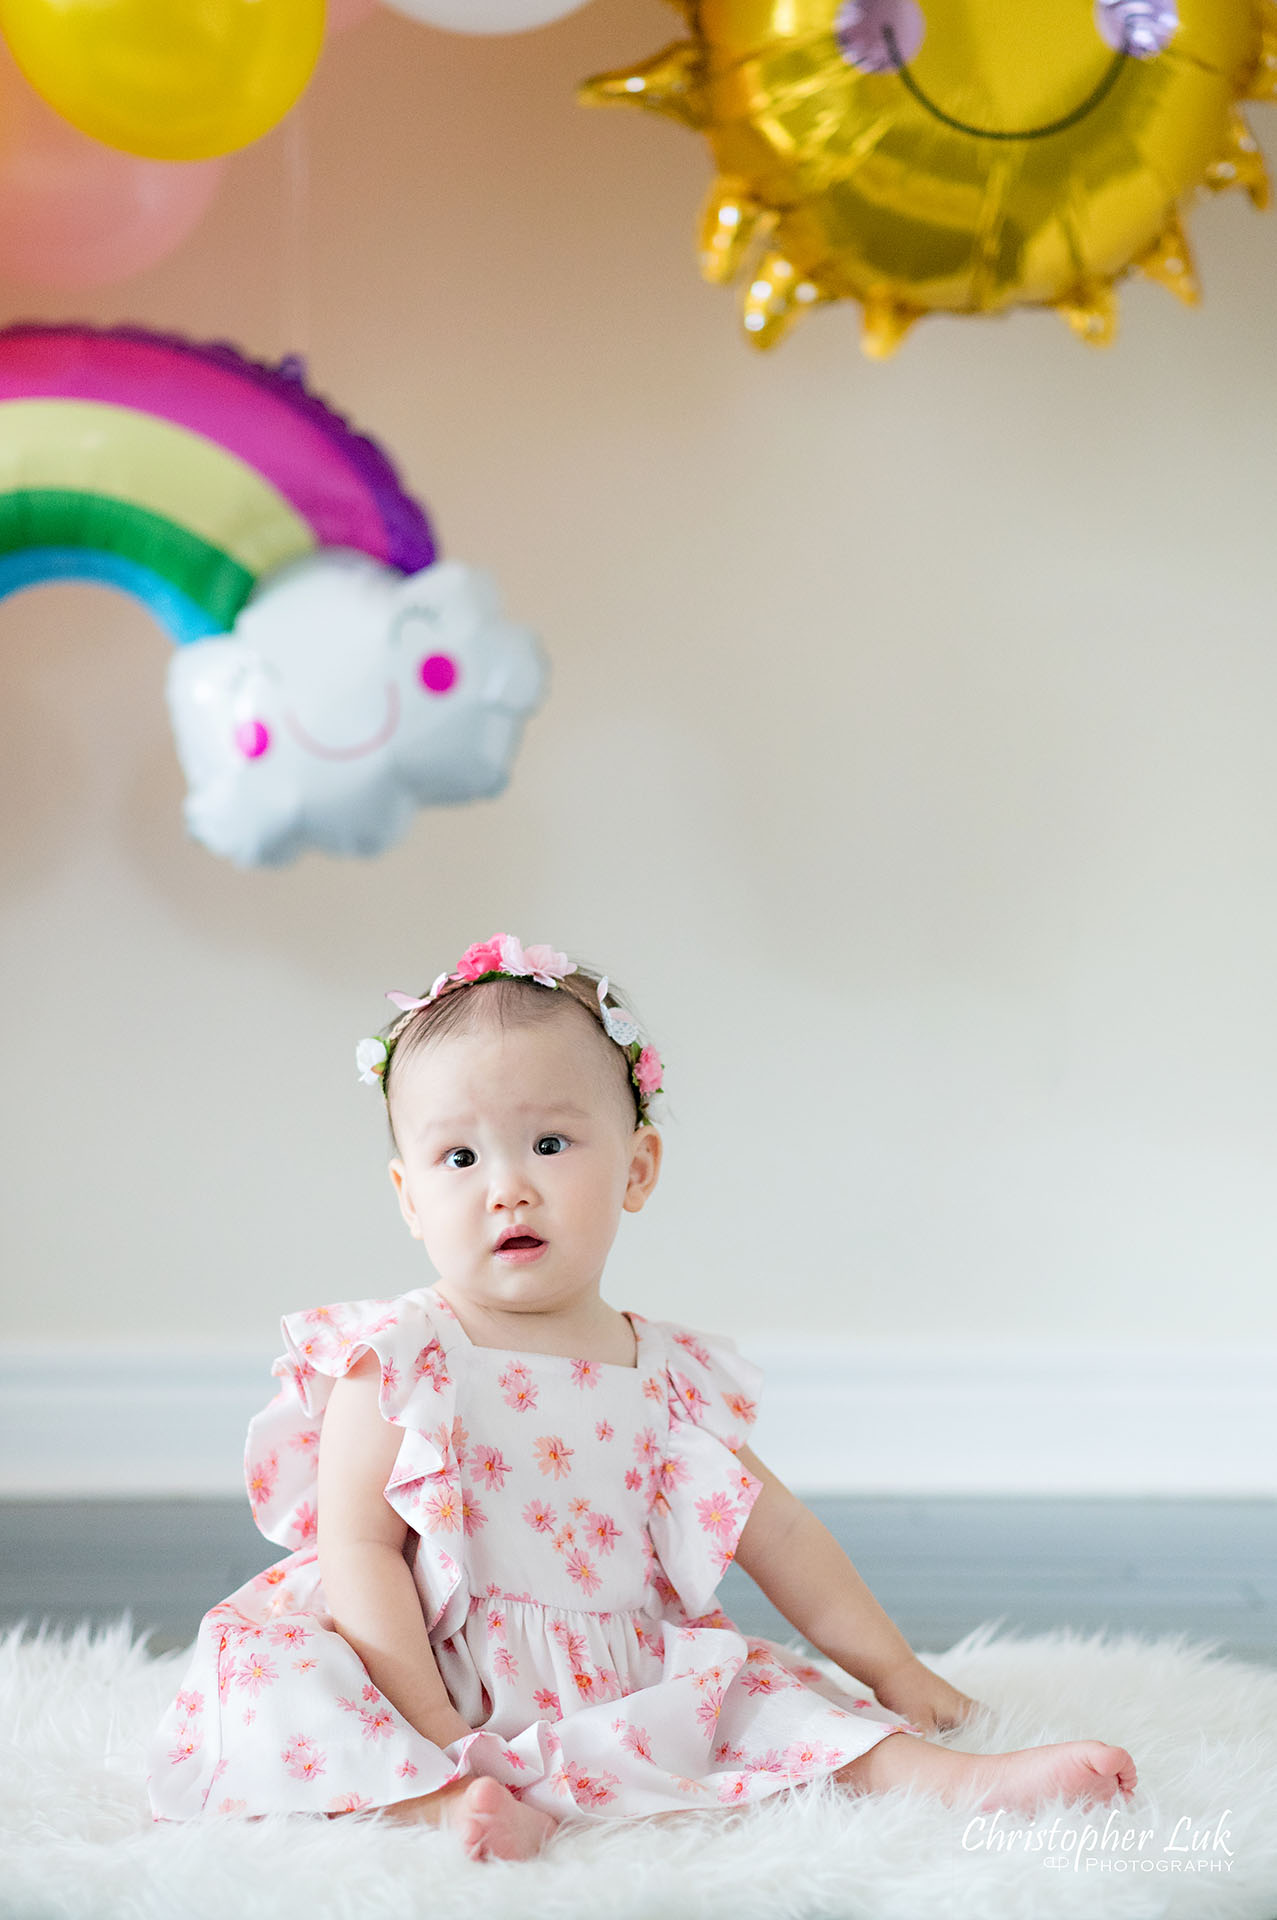 Christopher Luk Toronto Markham Family Photographer Baby Girl First Birthday Balloon Arch Rainbow Pink Natural Candid Photojournalistic Portrait